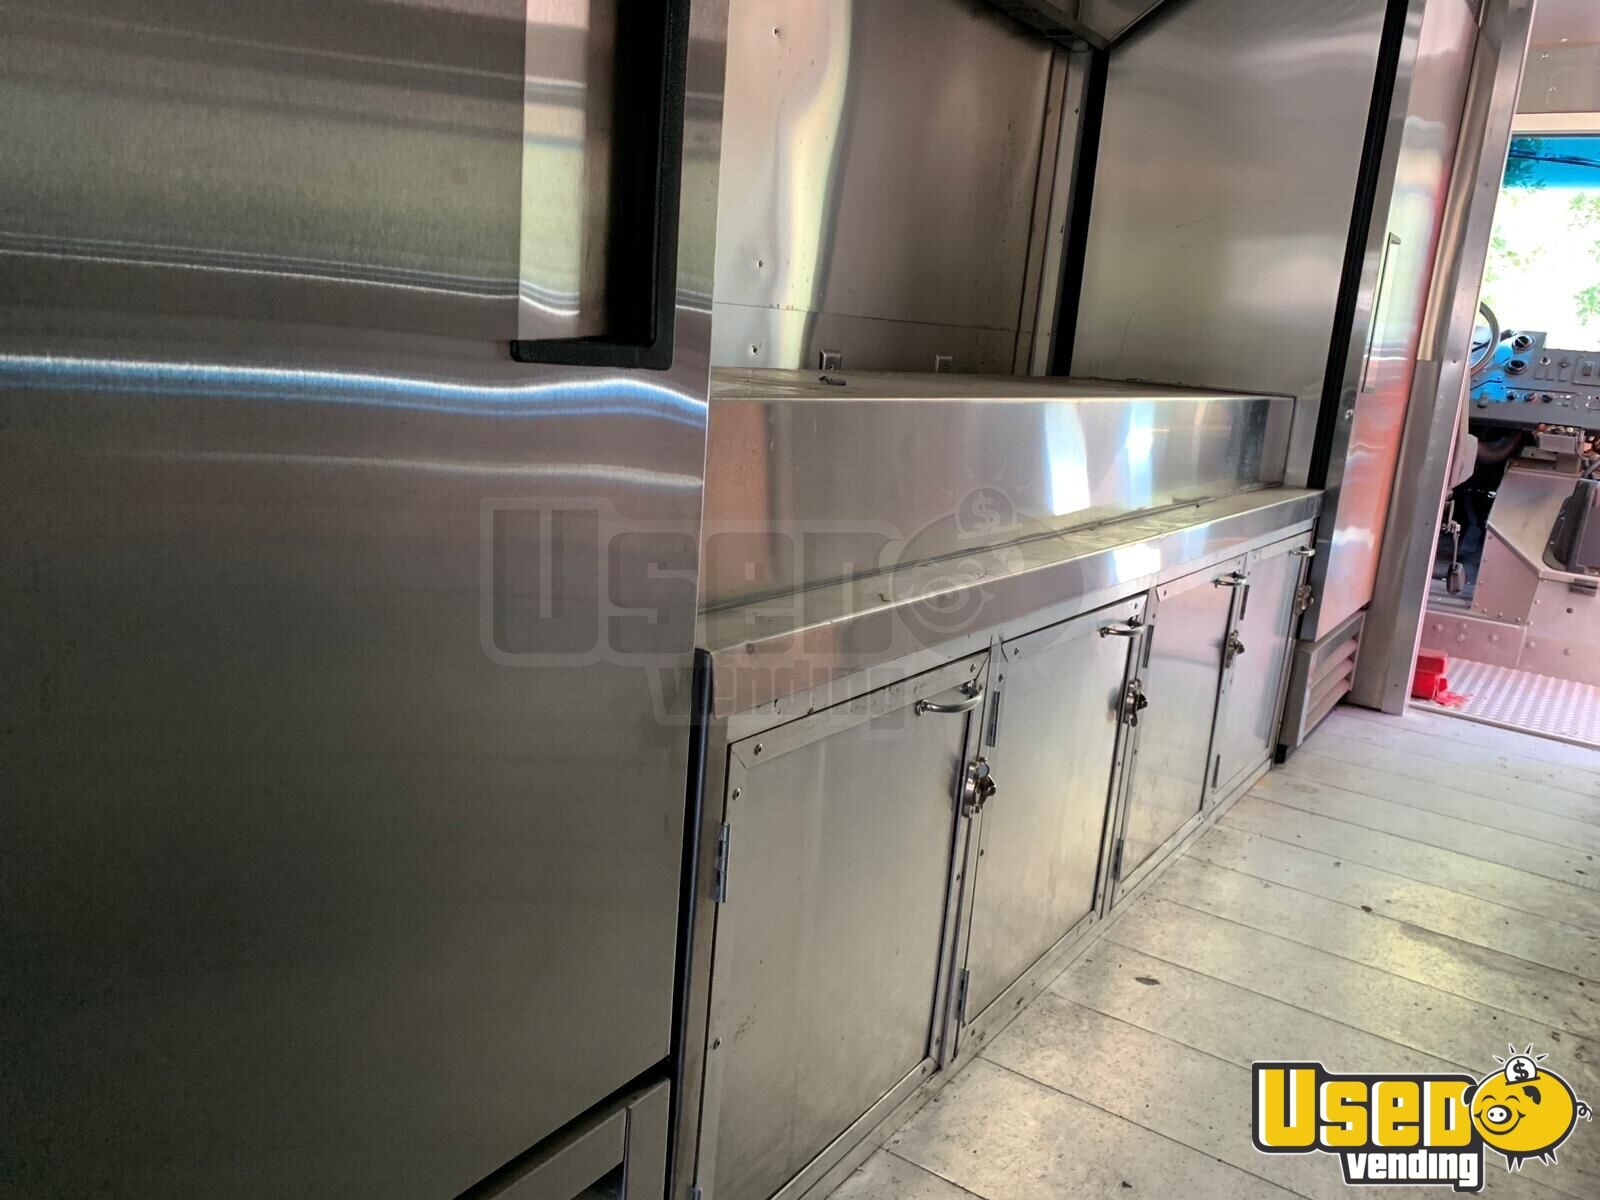 2013 Ford F50 All-purpose Food Truck Diamond Plated Aluminum Flooring Florida Gas Engine for Sale - 11